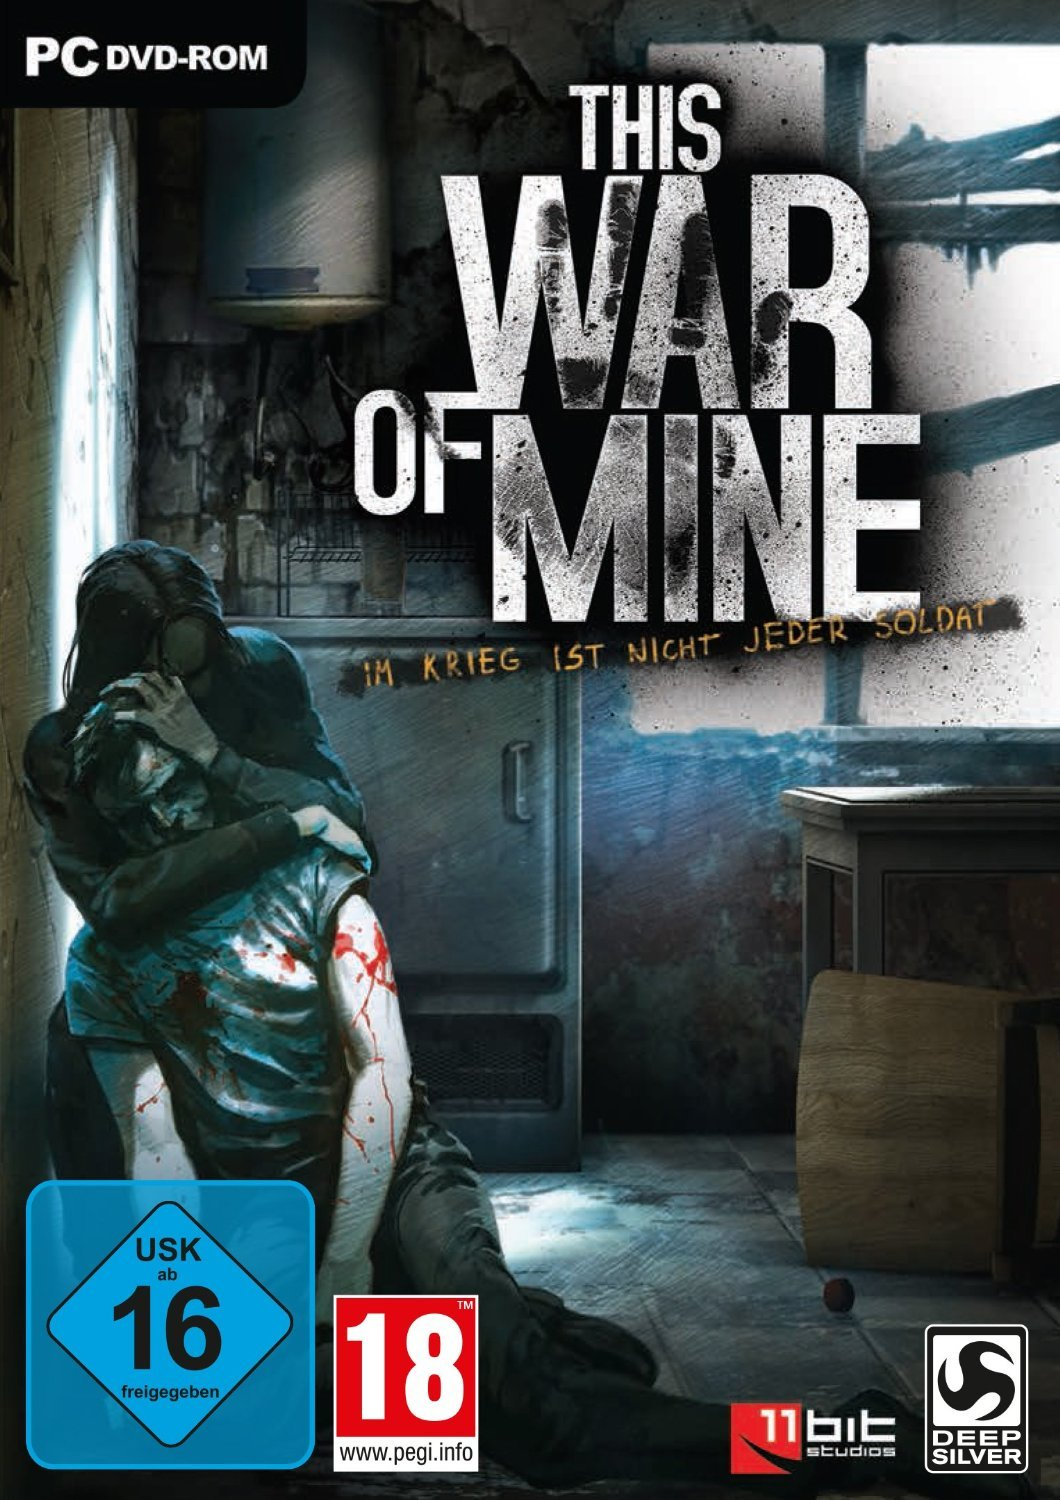 This War of Mine - Bestes internationales Spiel beim DCP 2015